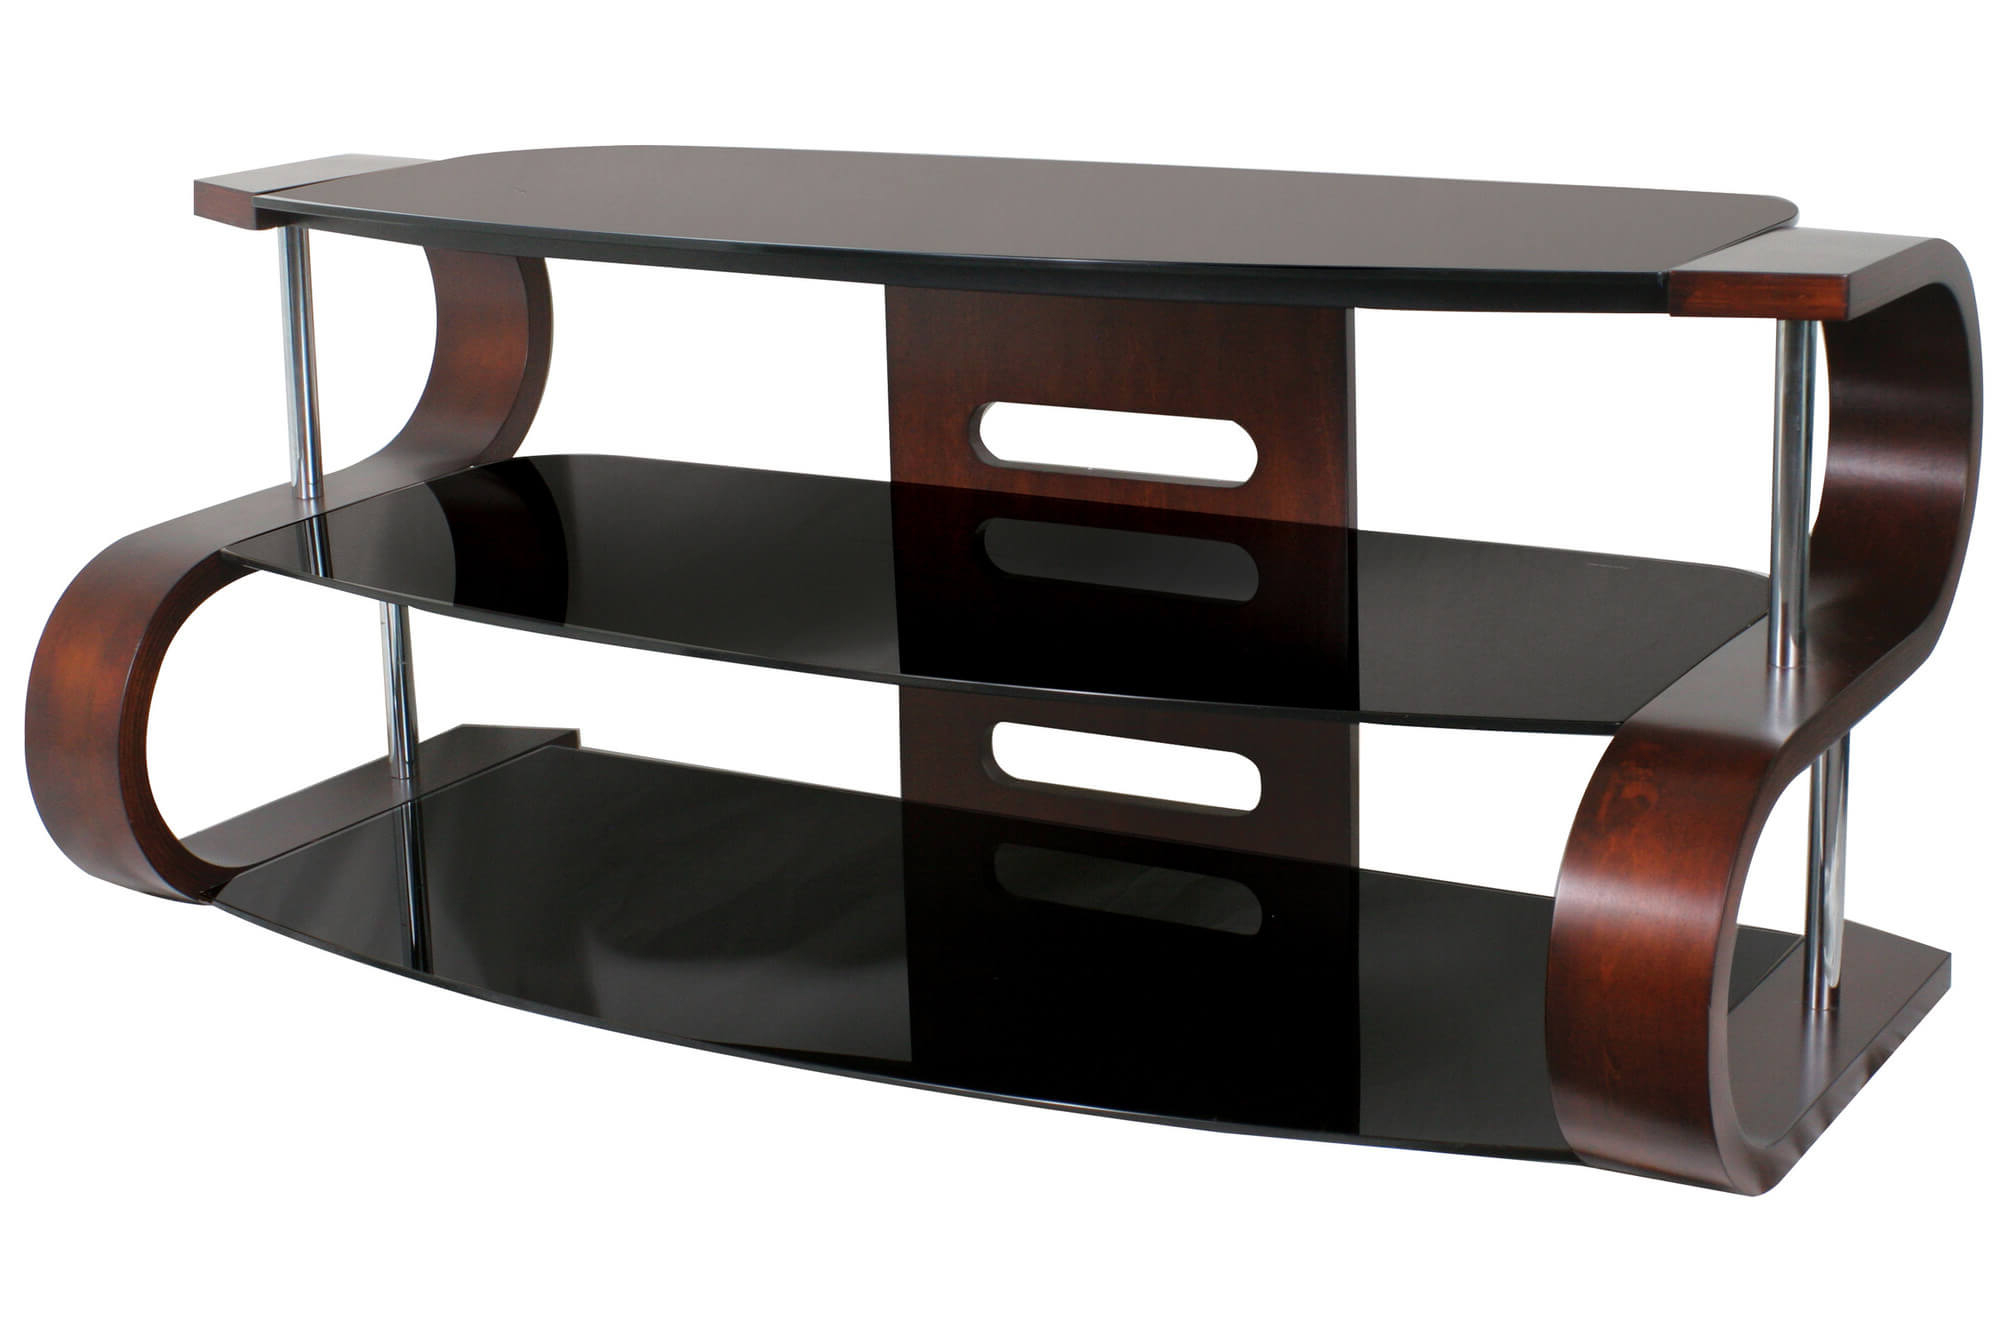 16 Types Of Tv Stands (Comprehensive Buying Guide) Inside Gunmetal Media Console Tables (View 1 of 20)